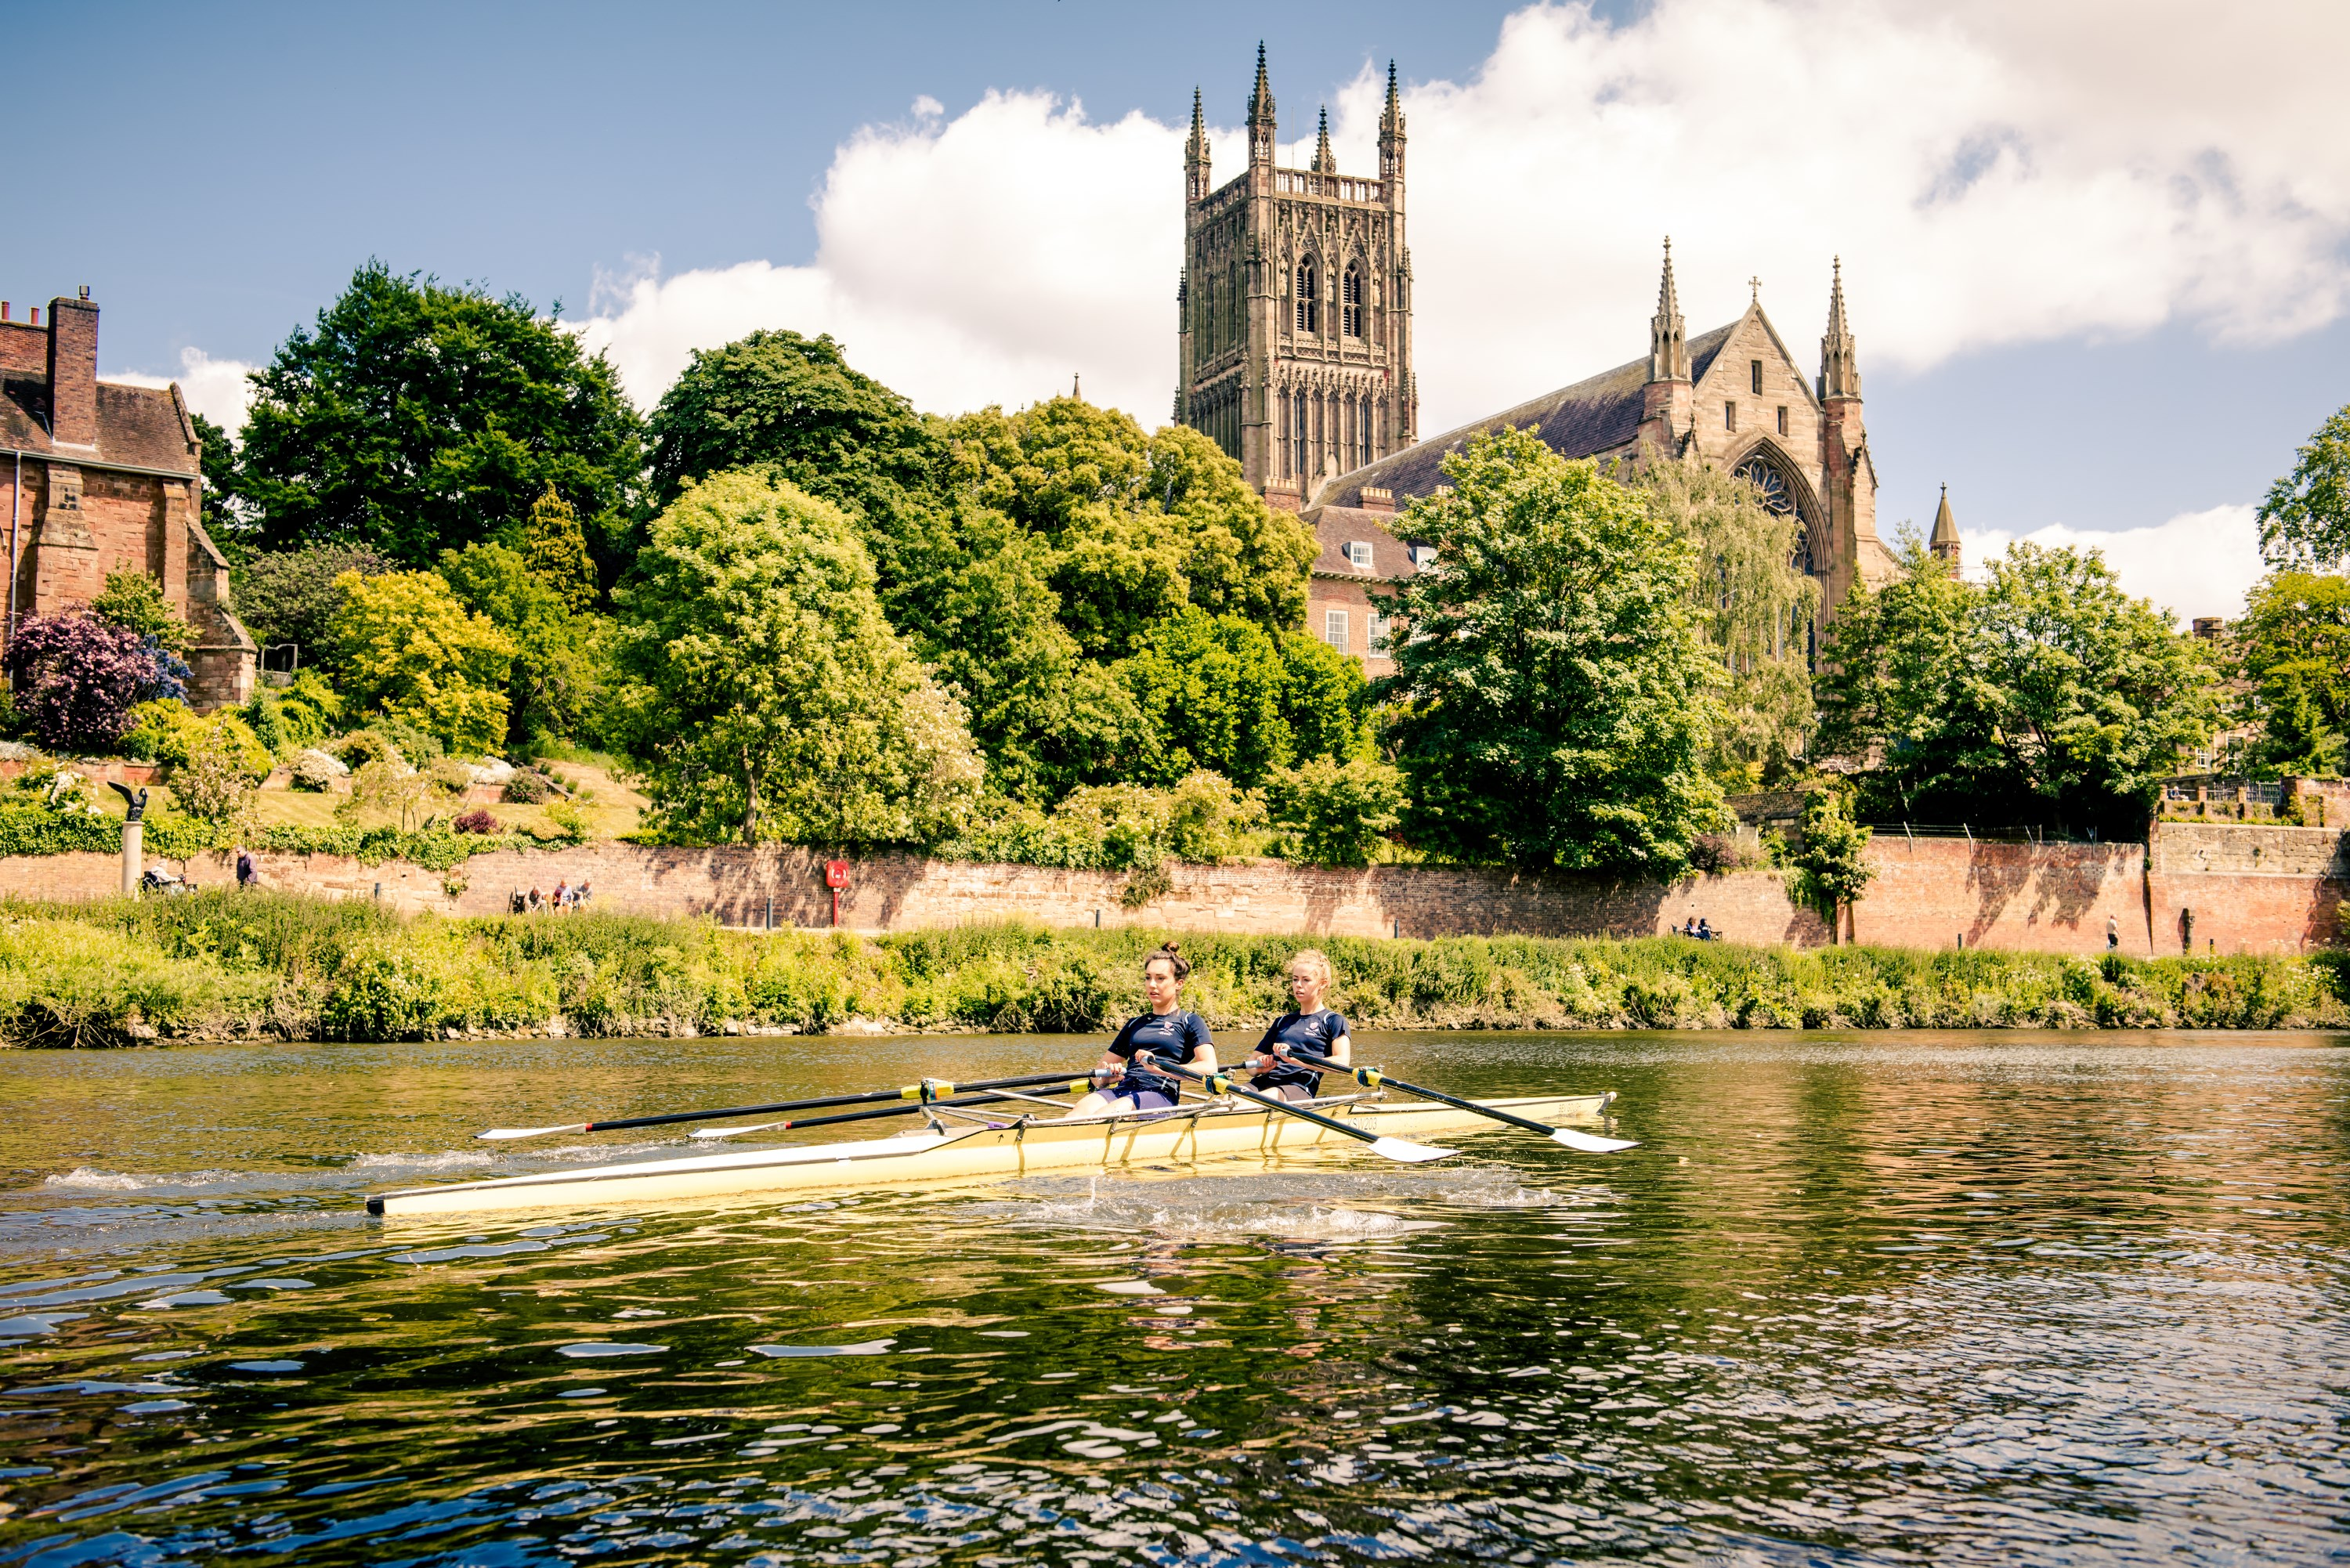 King's School Worcester, Rowing on the River